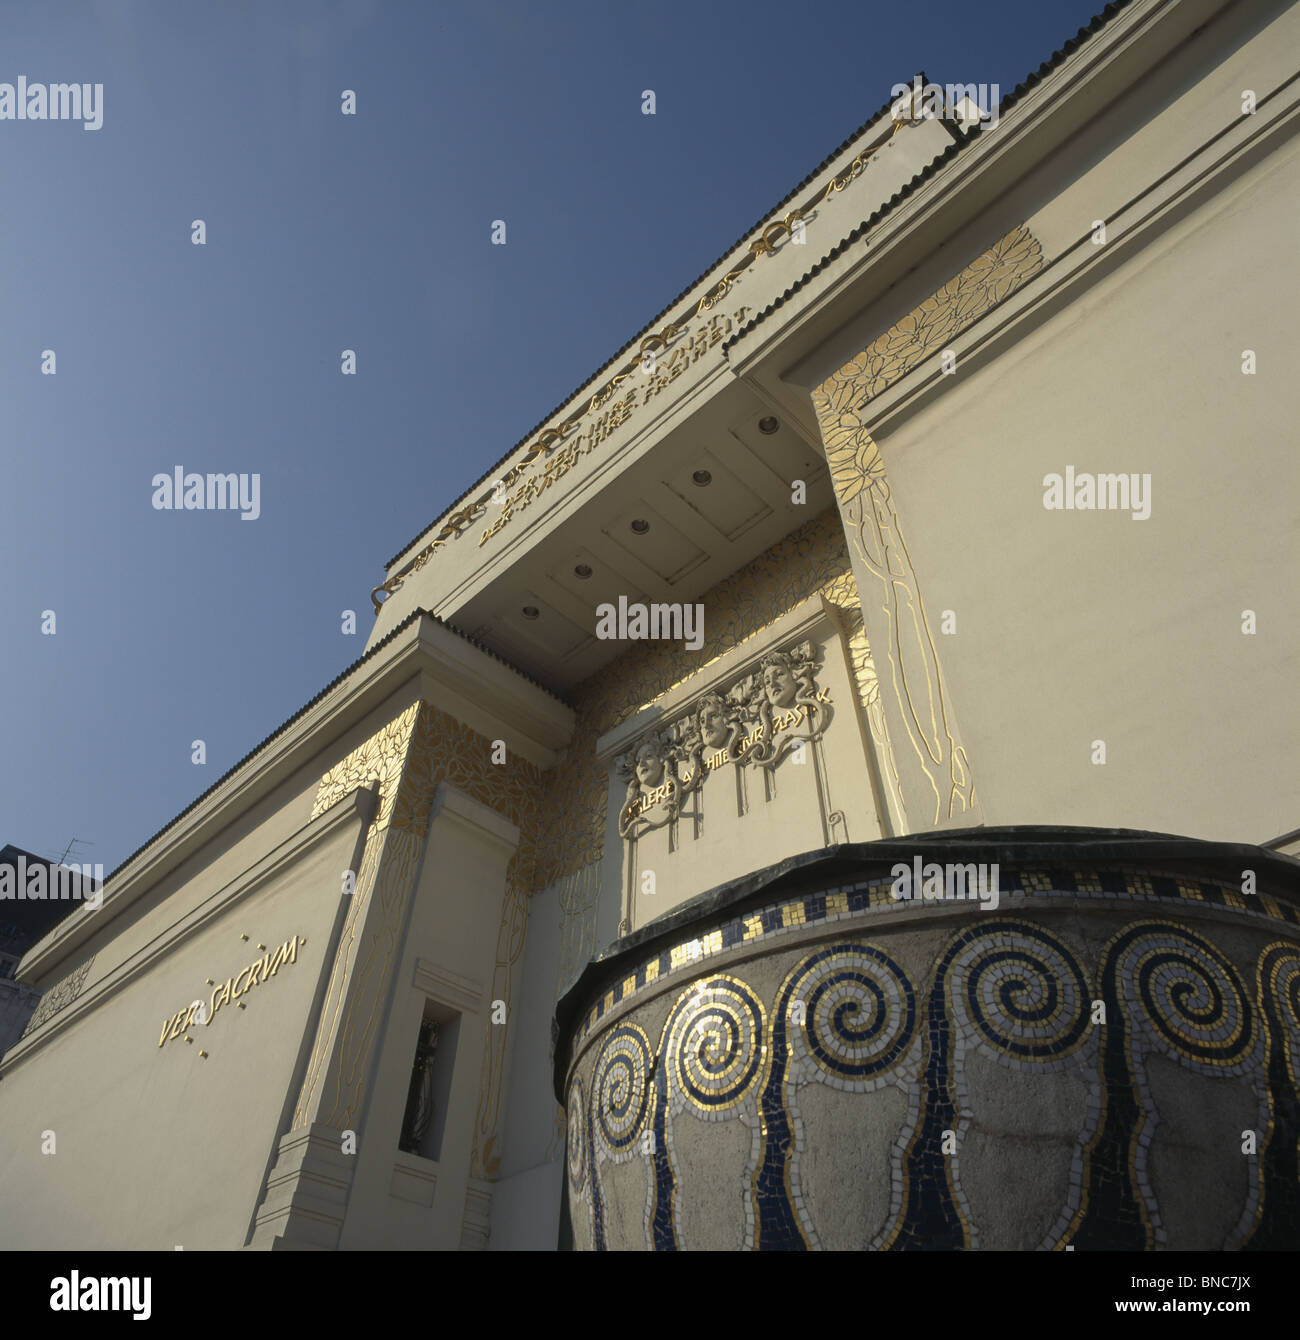 Secession (Sezession) Bldg Detail - Stock Image